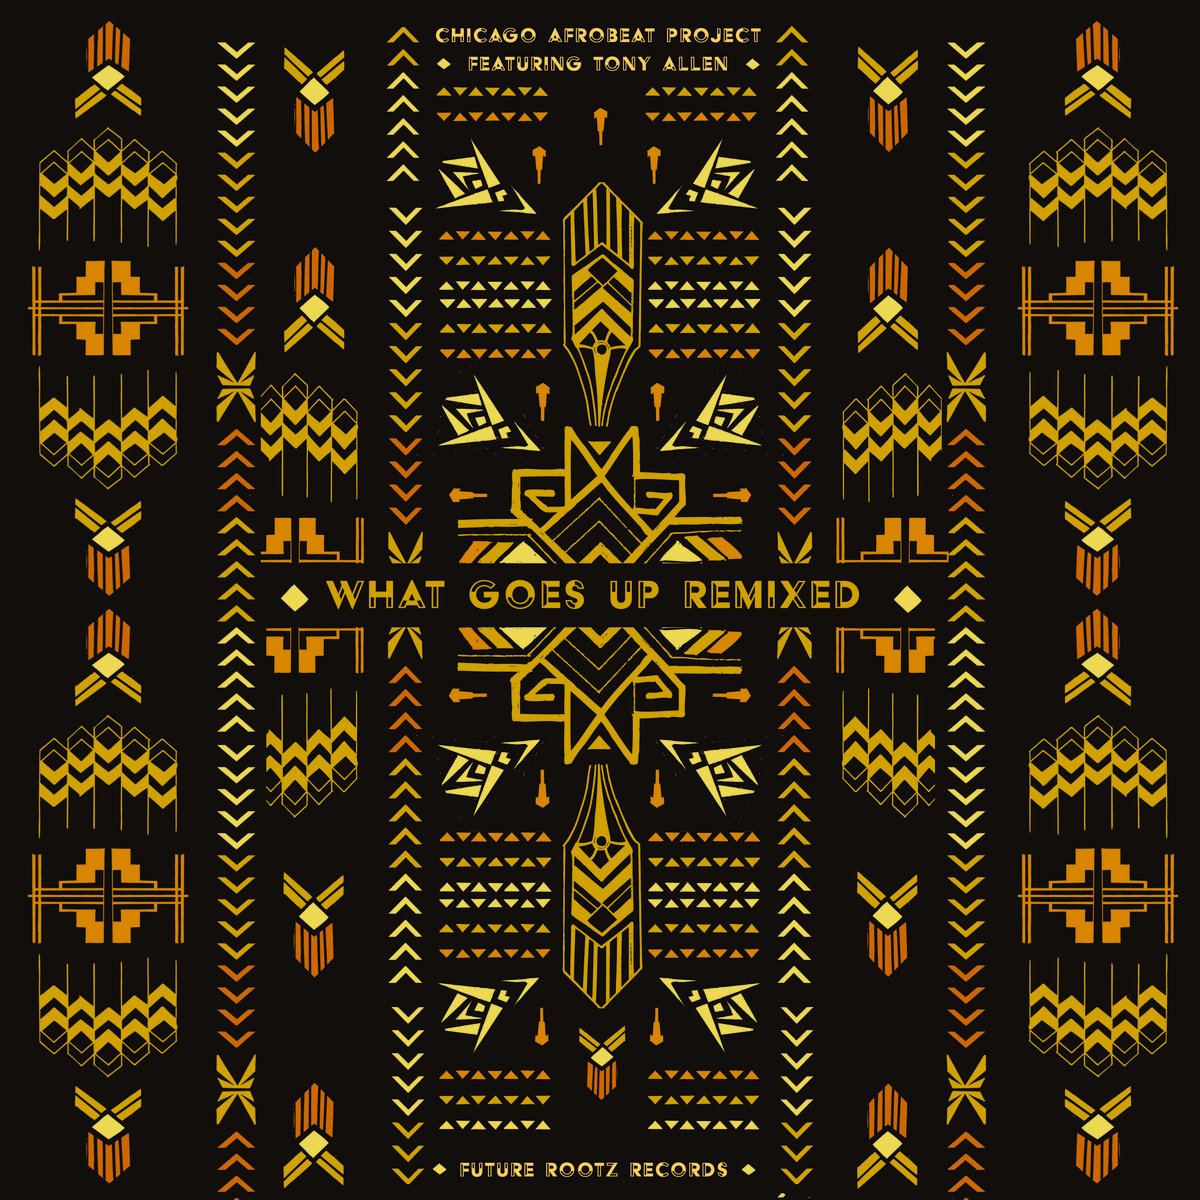 """Song of the Day: Chicago Afrobeat Project feat. Tony Allen """"Cut the Infection"""" (Sol Power All Stars Remix)"""